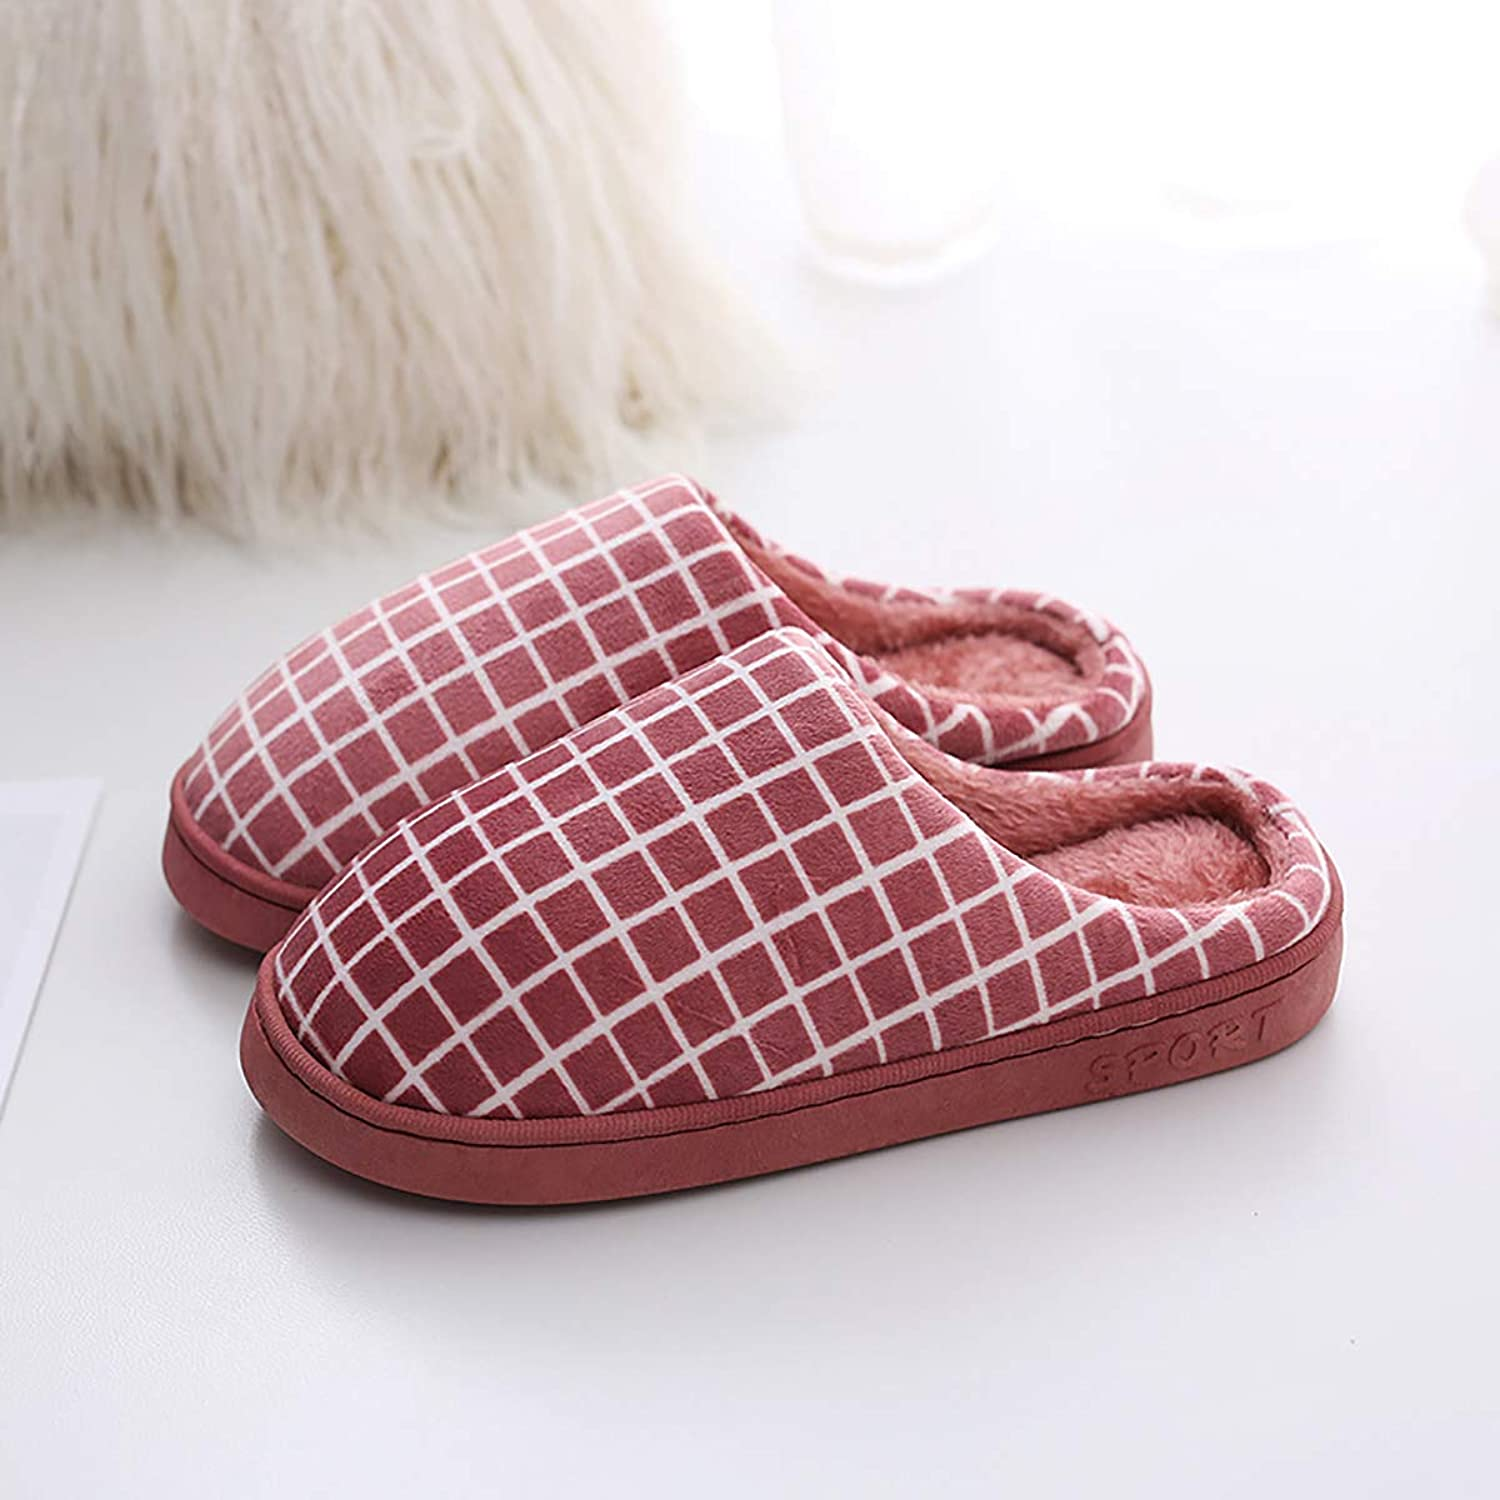 Coral Velvet PU Leather Slippers Indoor Non-Slip Warm Cotton shoes Half-Pack Heel with Plaid Home shoes for Men and Women,Red,38 39